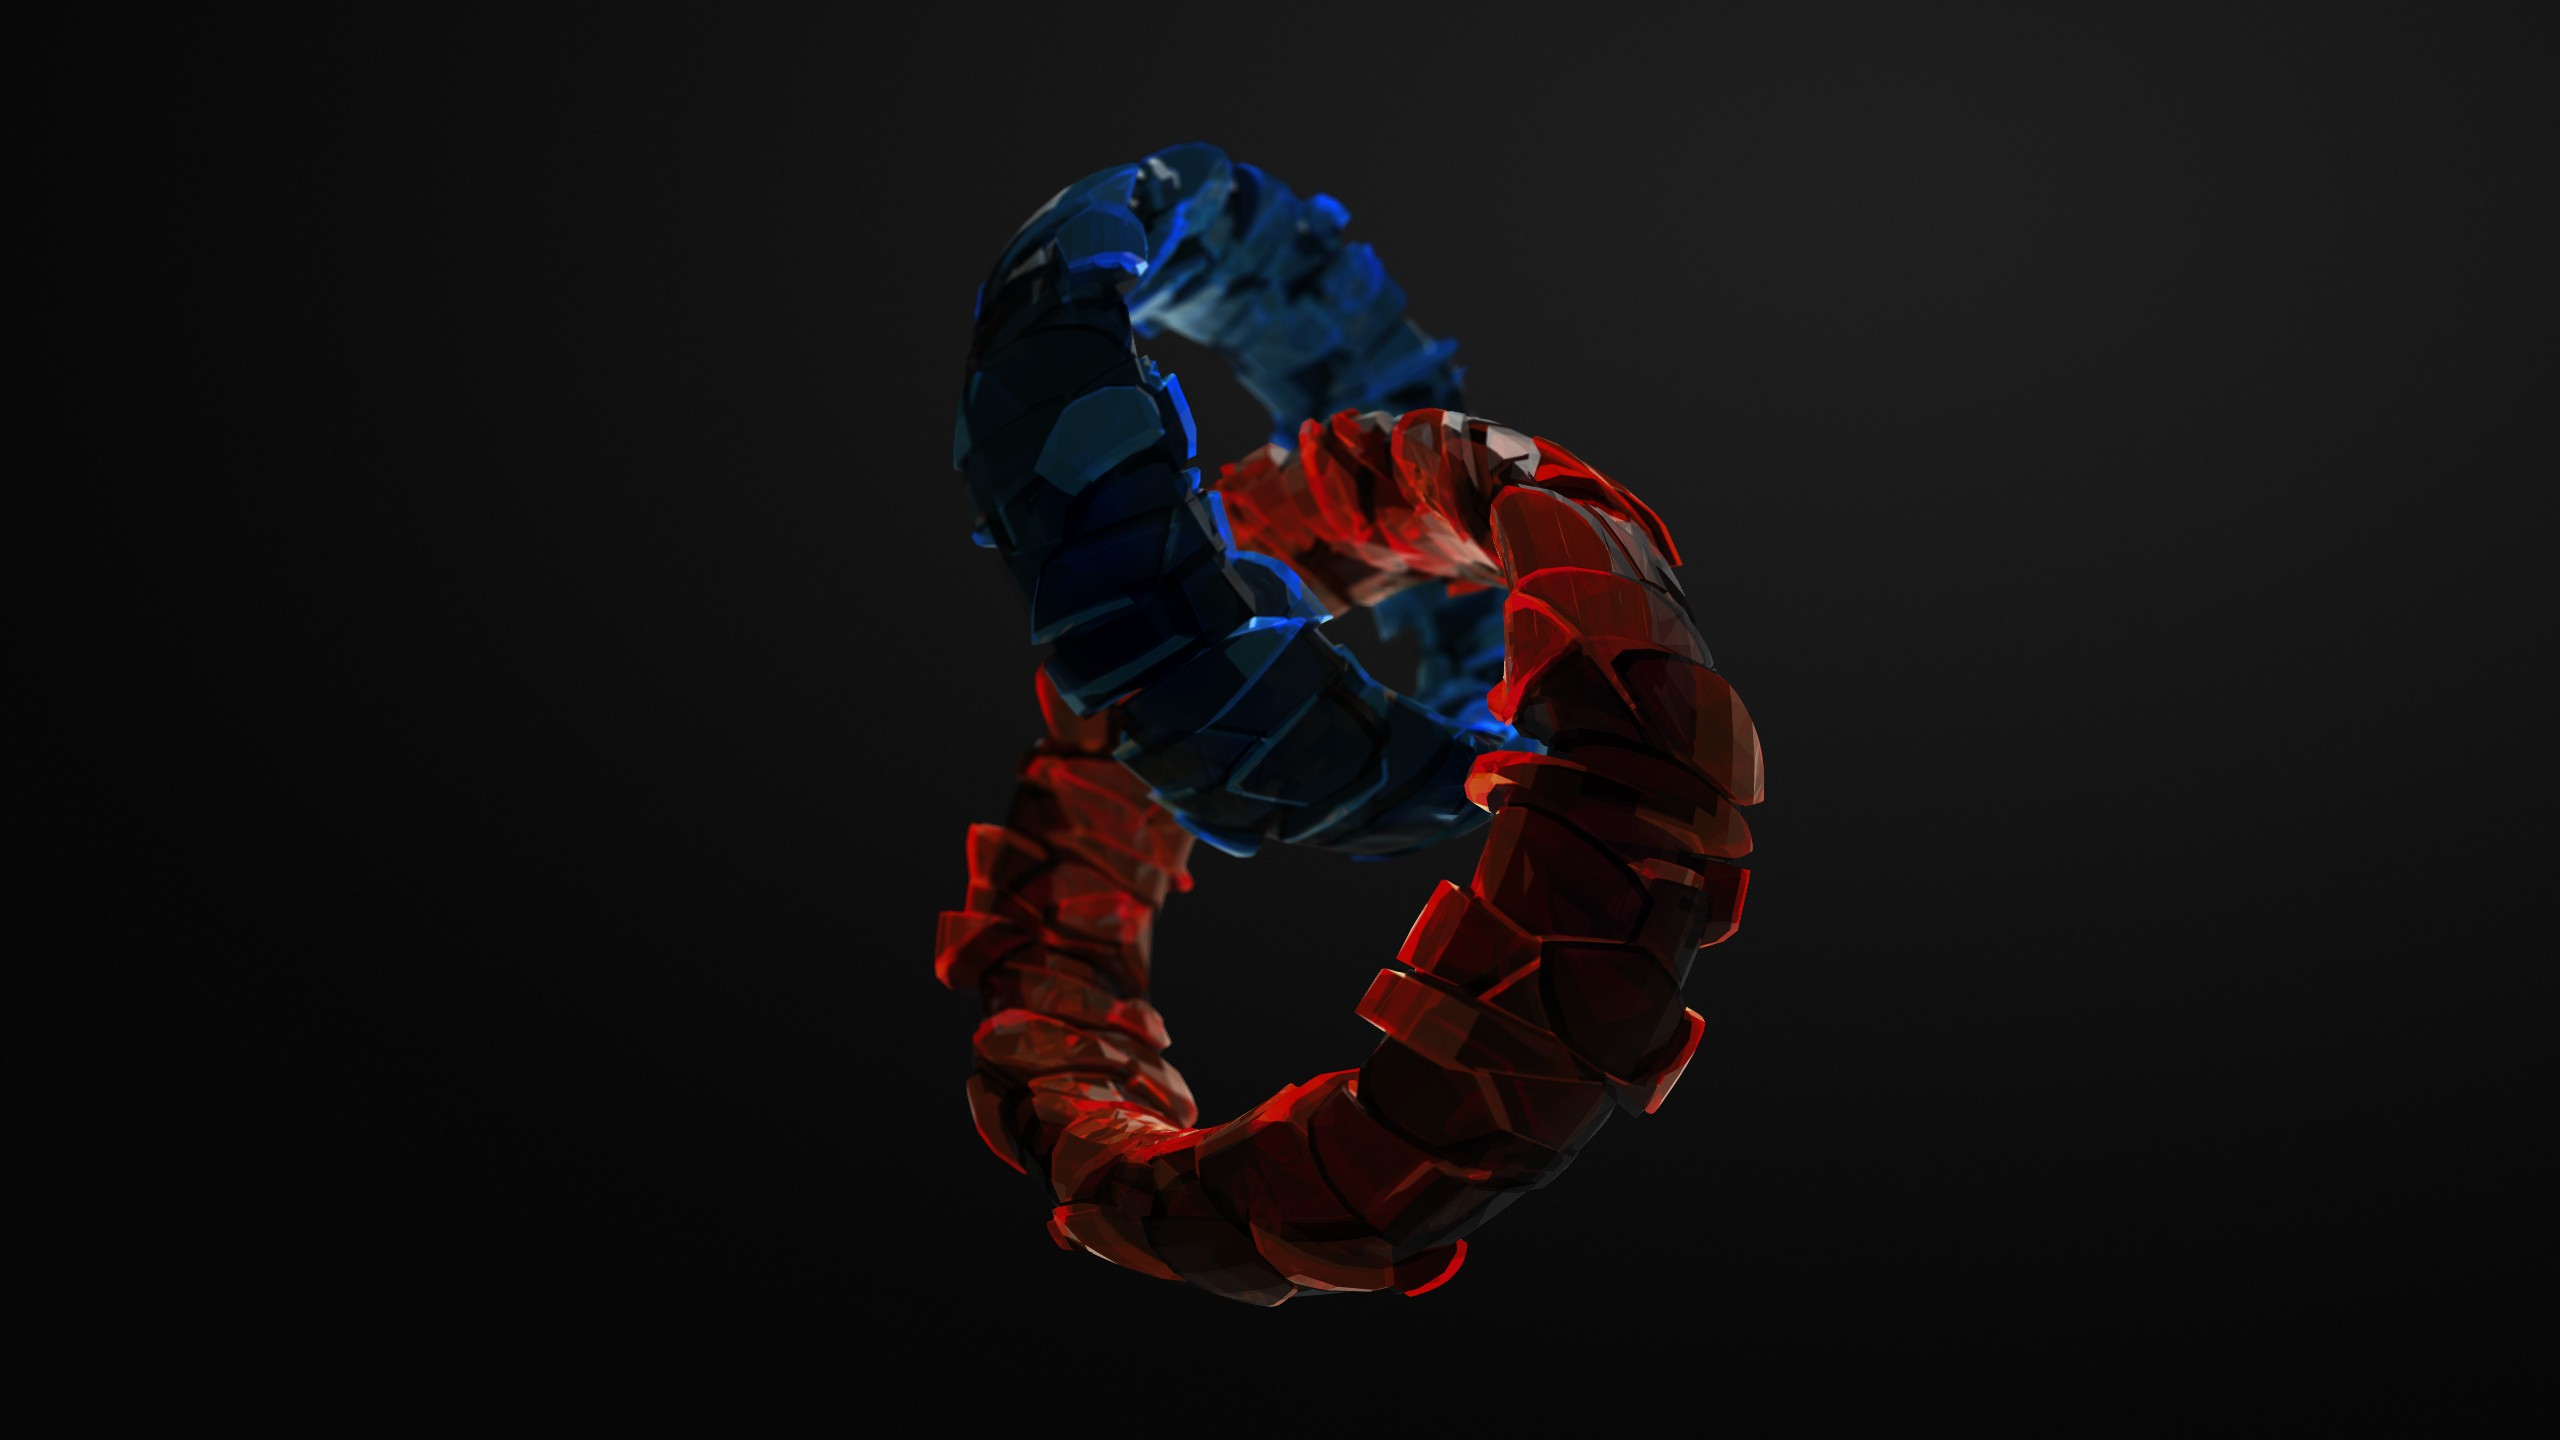 Wallpapers Girls Gamer Wallpaper Rings 3d Blue Red Glass Hd Abstract 16366